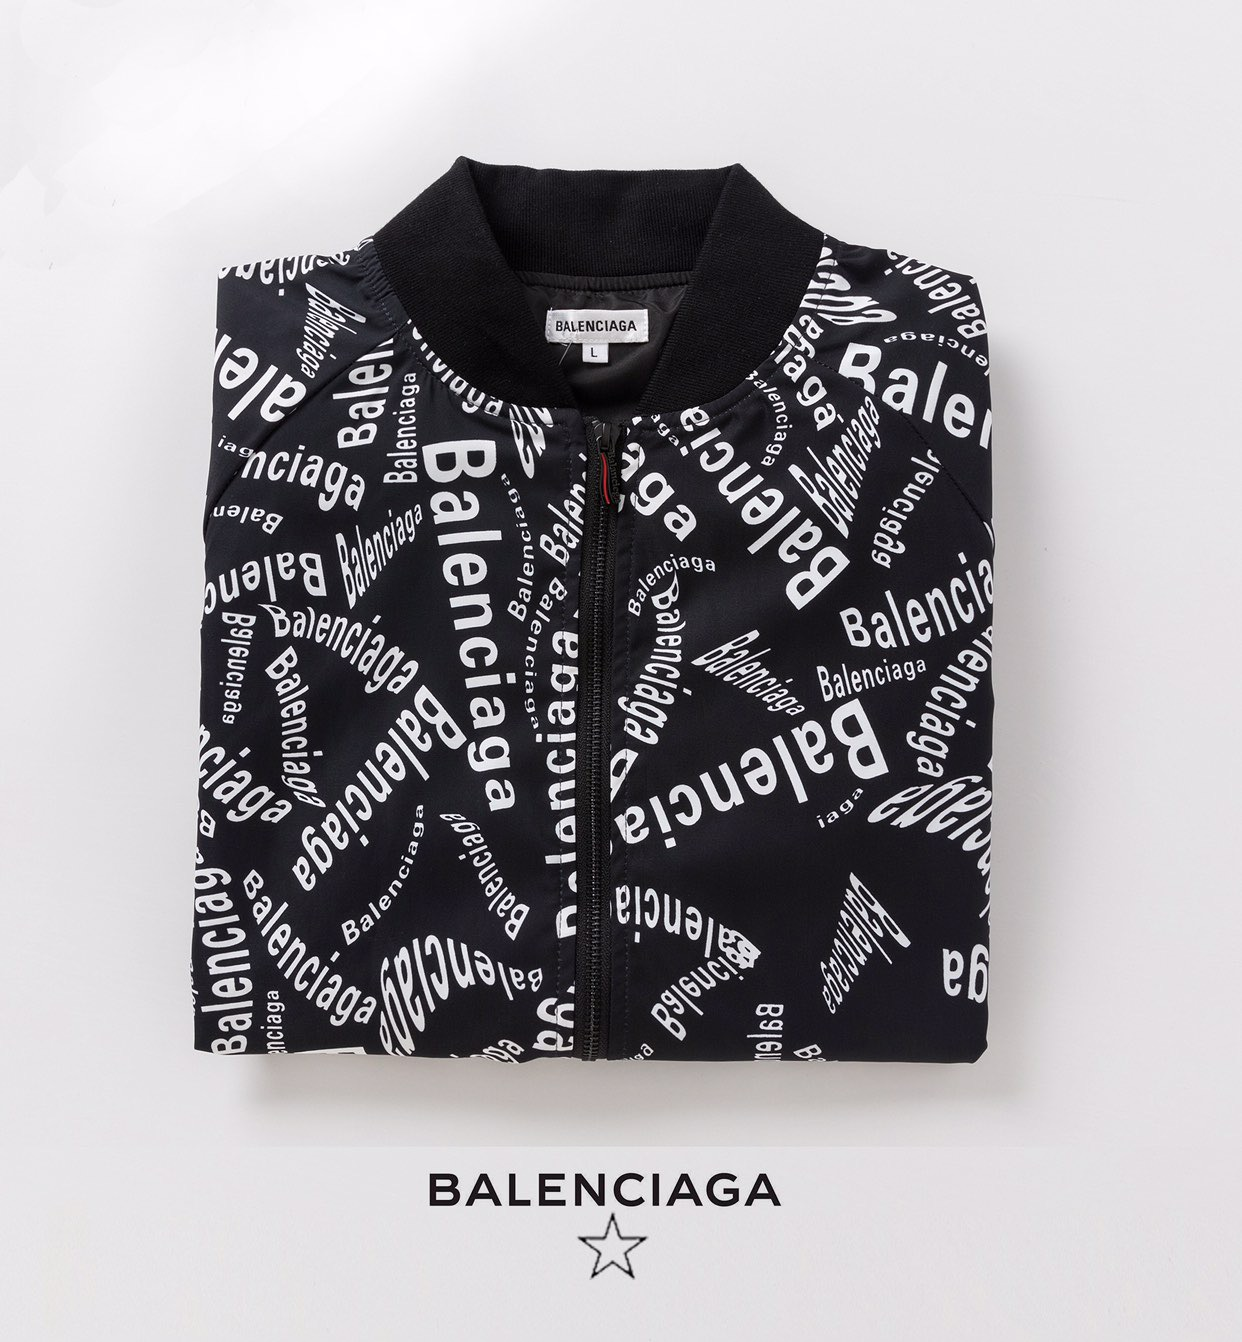 2020 Balenciaga Allover Logo Zip Up Bomber Jackets For Men in 229205, cheap Balenciaga Jackets, only $45!